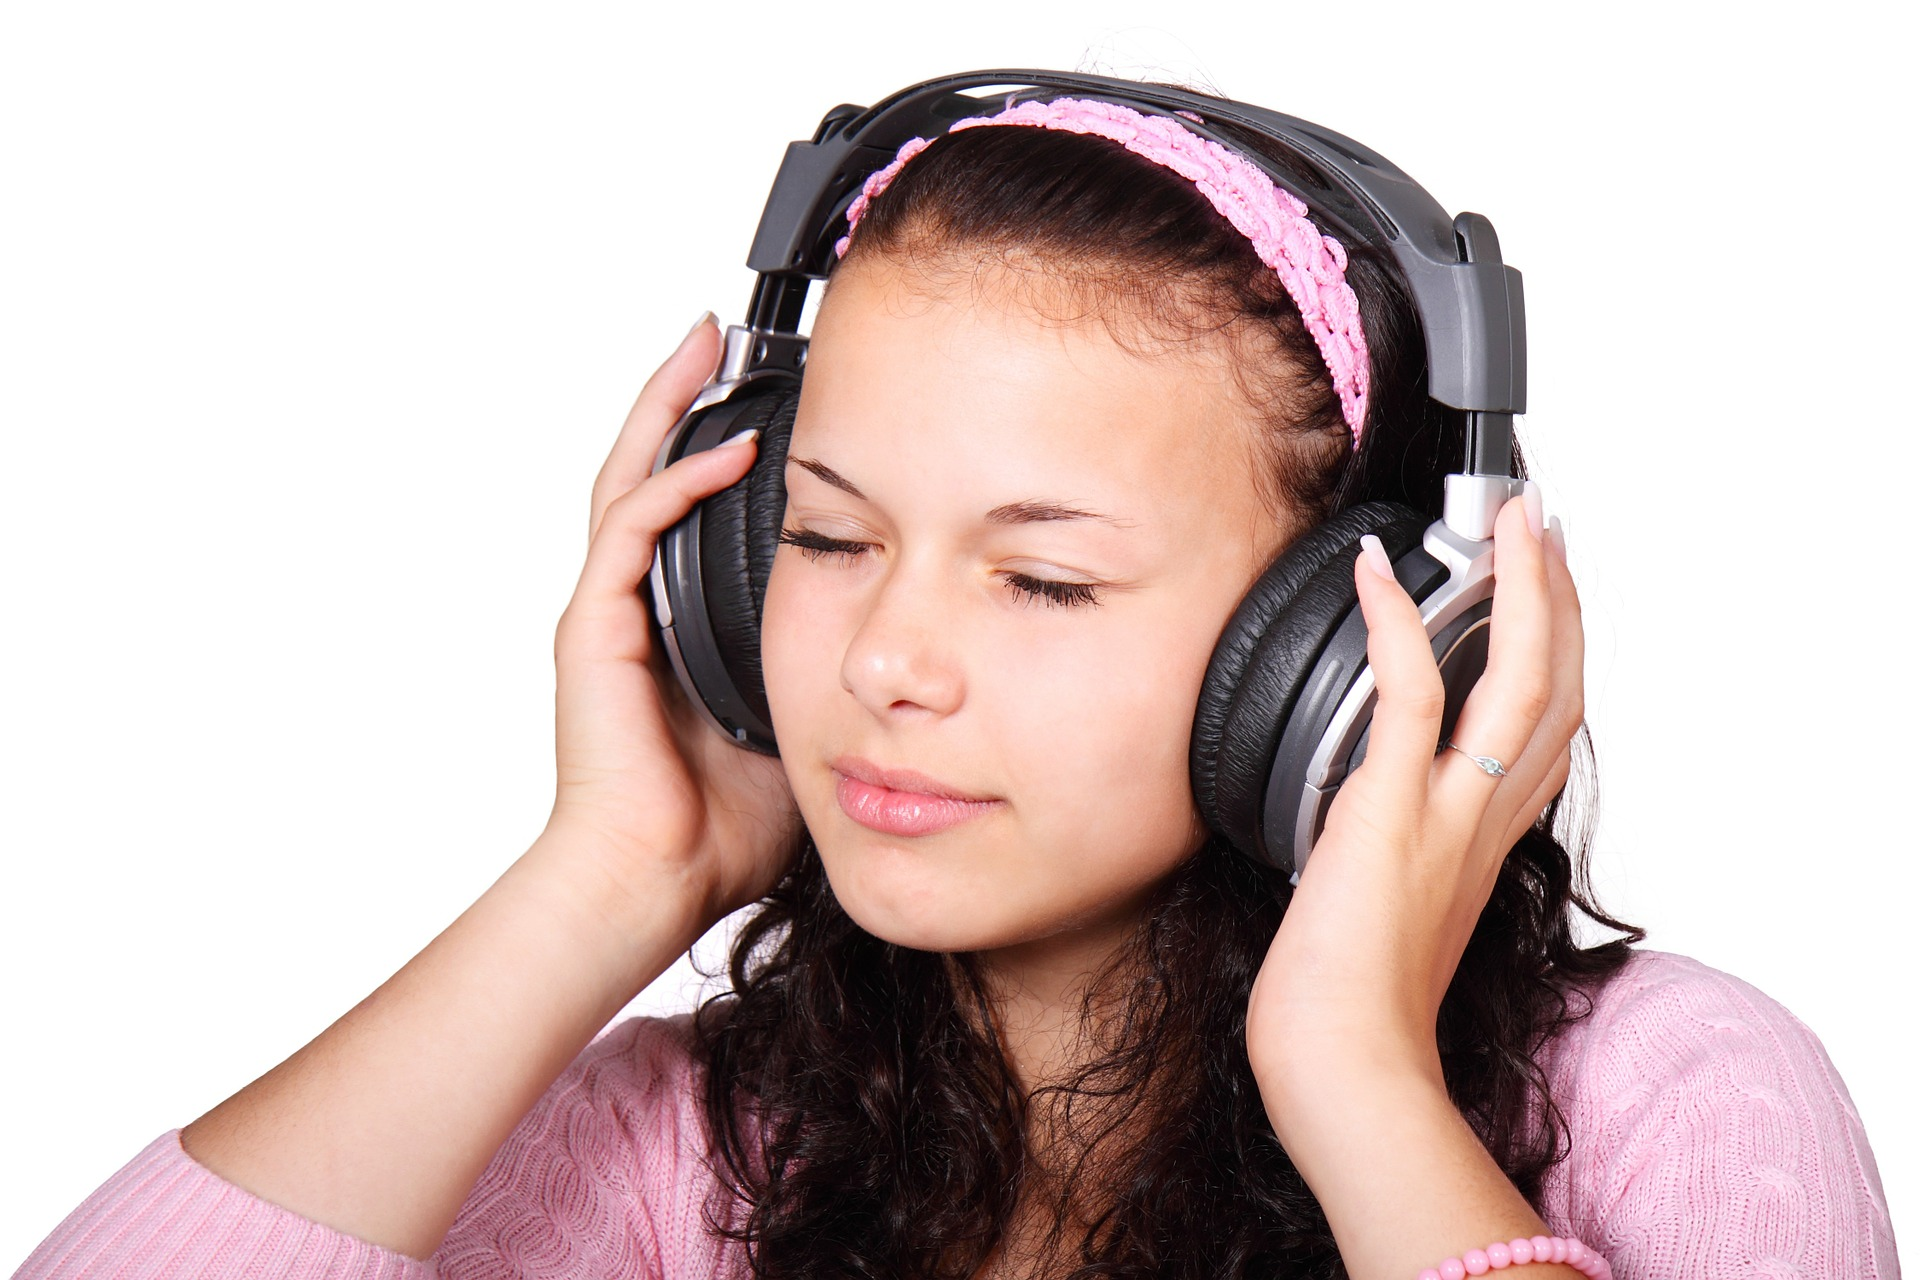 Research has shown that listening to music can be a powerful way to reduce stress and anxiety levels.